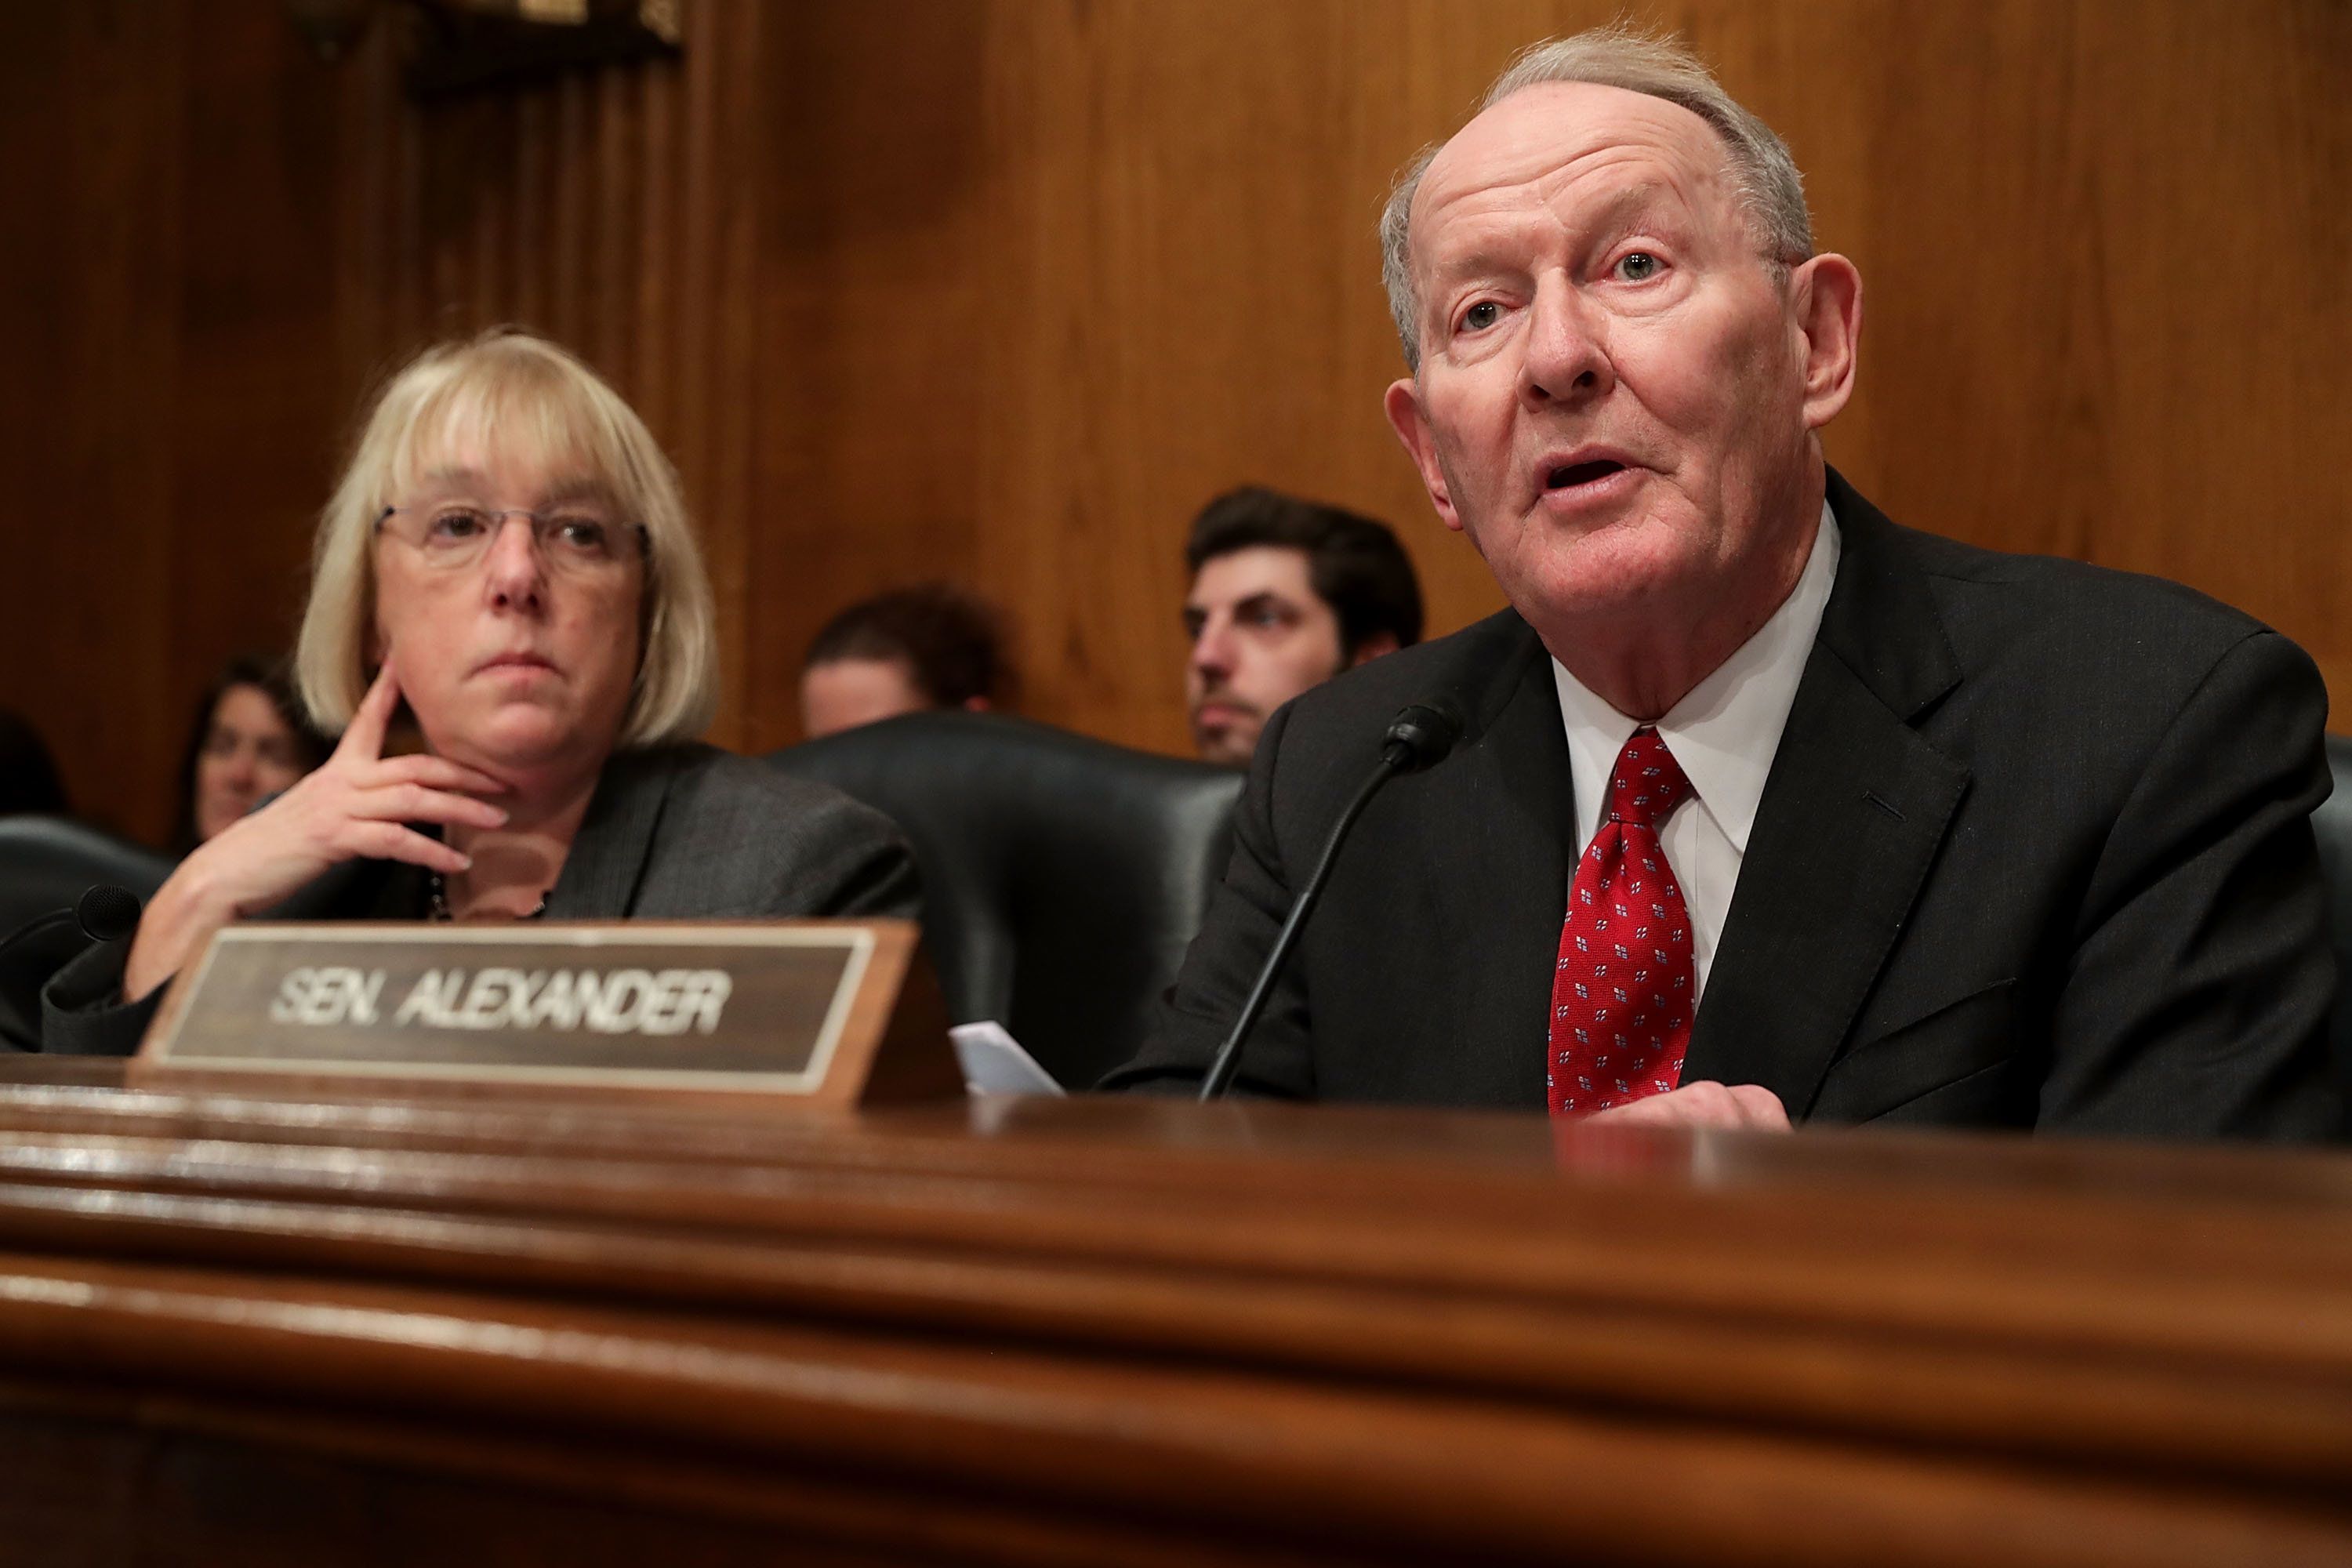 WASHINGTON, DC - JANUARY 17:  Senate Health, Education, Labor and Pensions Committee Chairman Lamar Alexander (R) delivers opening remarks as ranking member Sen. Patty Murray (D-WA) listens during the confirmation hearing for Betsy DeVos, President-elect Donald Trump's pick to be the next Secretary of Education, in the Dirksen Senate Office Building on Capitol Hill  January 17, 2017 in Washington, DC. DeVos is known for her advocacy of school choice and education voucher programs and is a long-time leader of the Republican Party in Michigan.  (Photo by Chip Somodevilla/Getty Images)